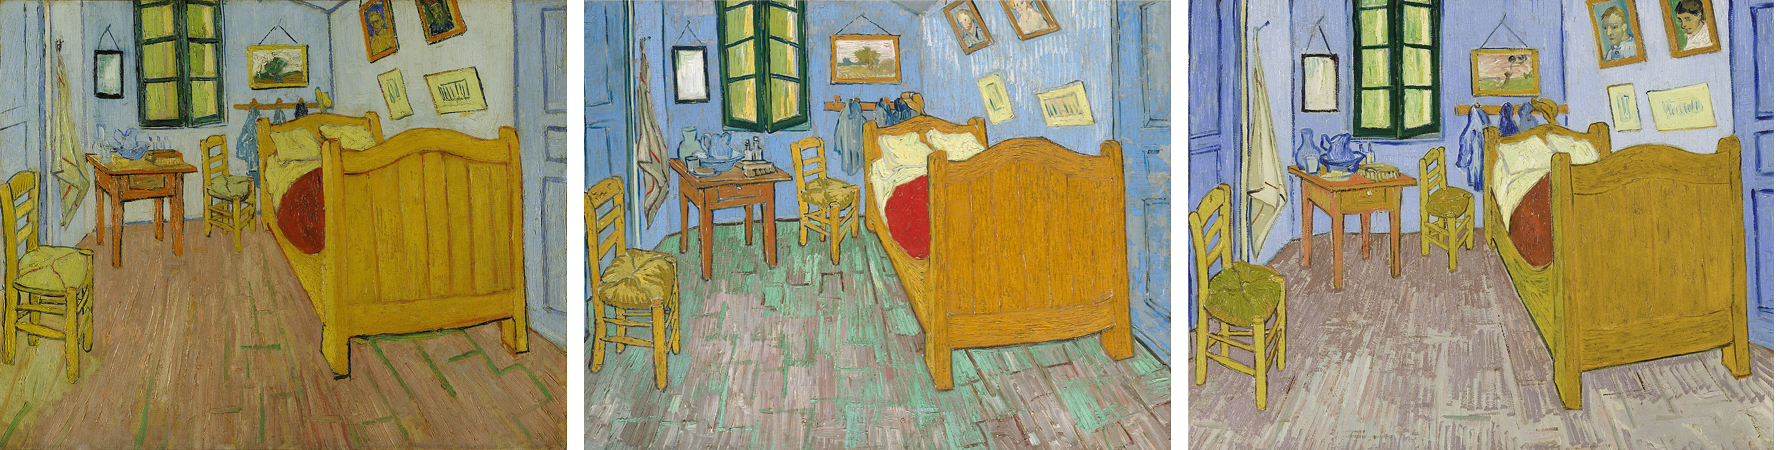 Bedroom at Arles  left to right  Figure 4 Van Gogh Museum in Amsterdam. Art History   Angel Arvello